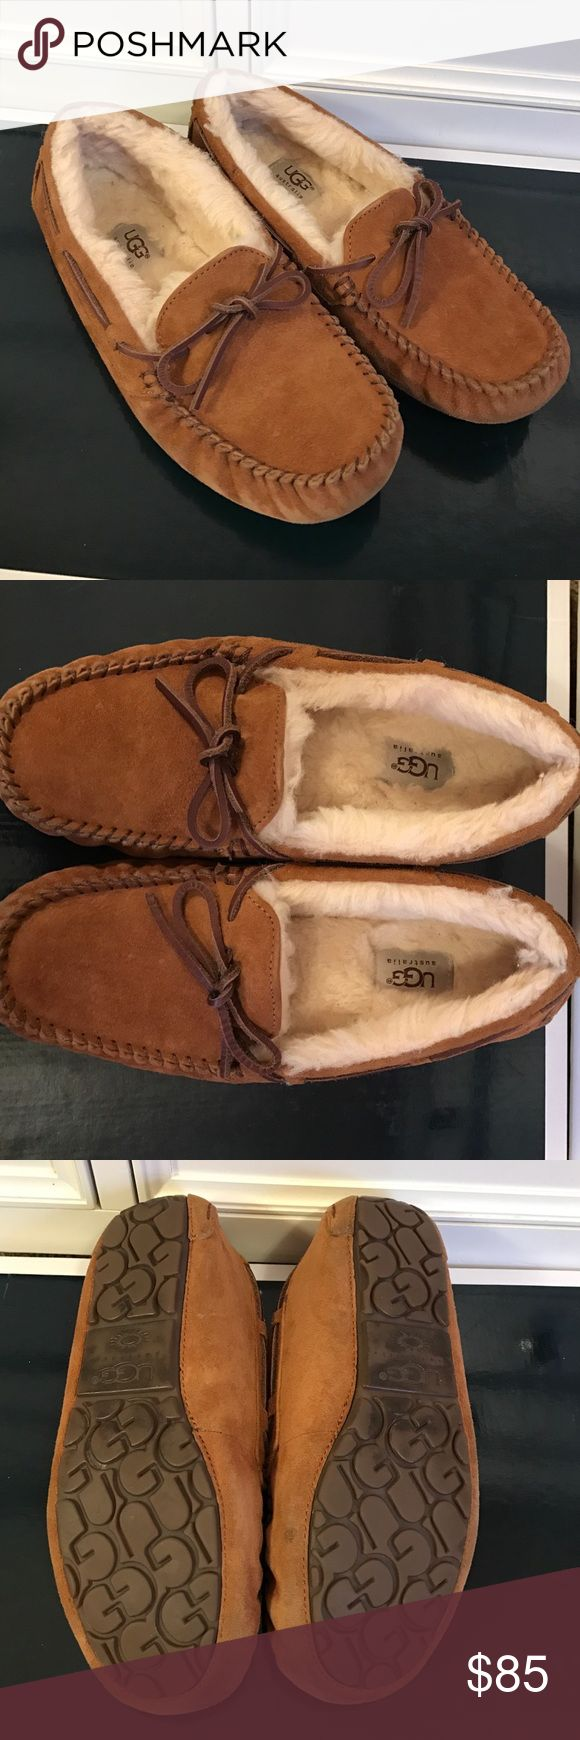 Chestnut Ugg Dakota Slipper Moccasins Size 8, chestnut color Ugg moccasins, in great condition. Dakota style slippers. 100% authentic. Only sign of wear is slight discoloration at the bottom of the shoes shown in picture 4. Note: does not include original box. Great purchase for the winter! ❄️ UGG Shoes Moccasins